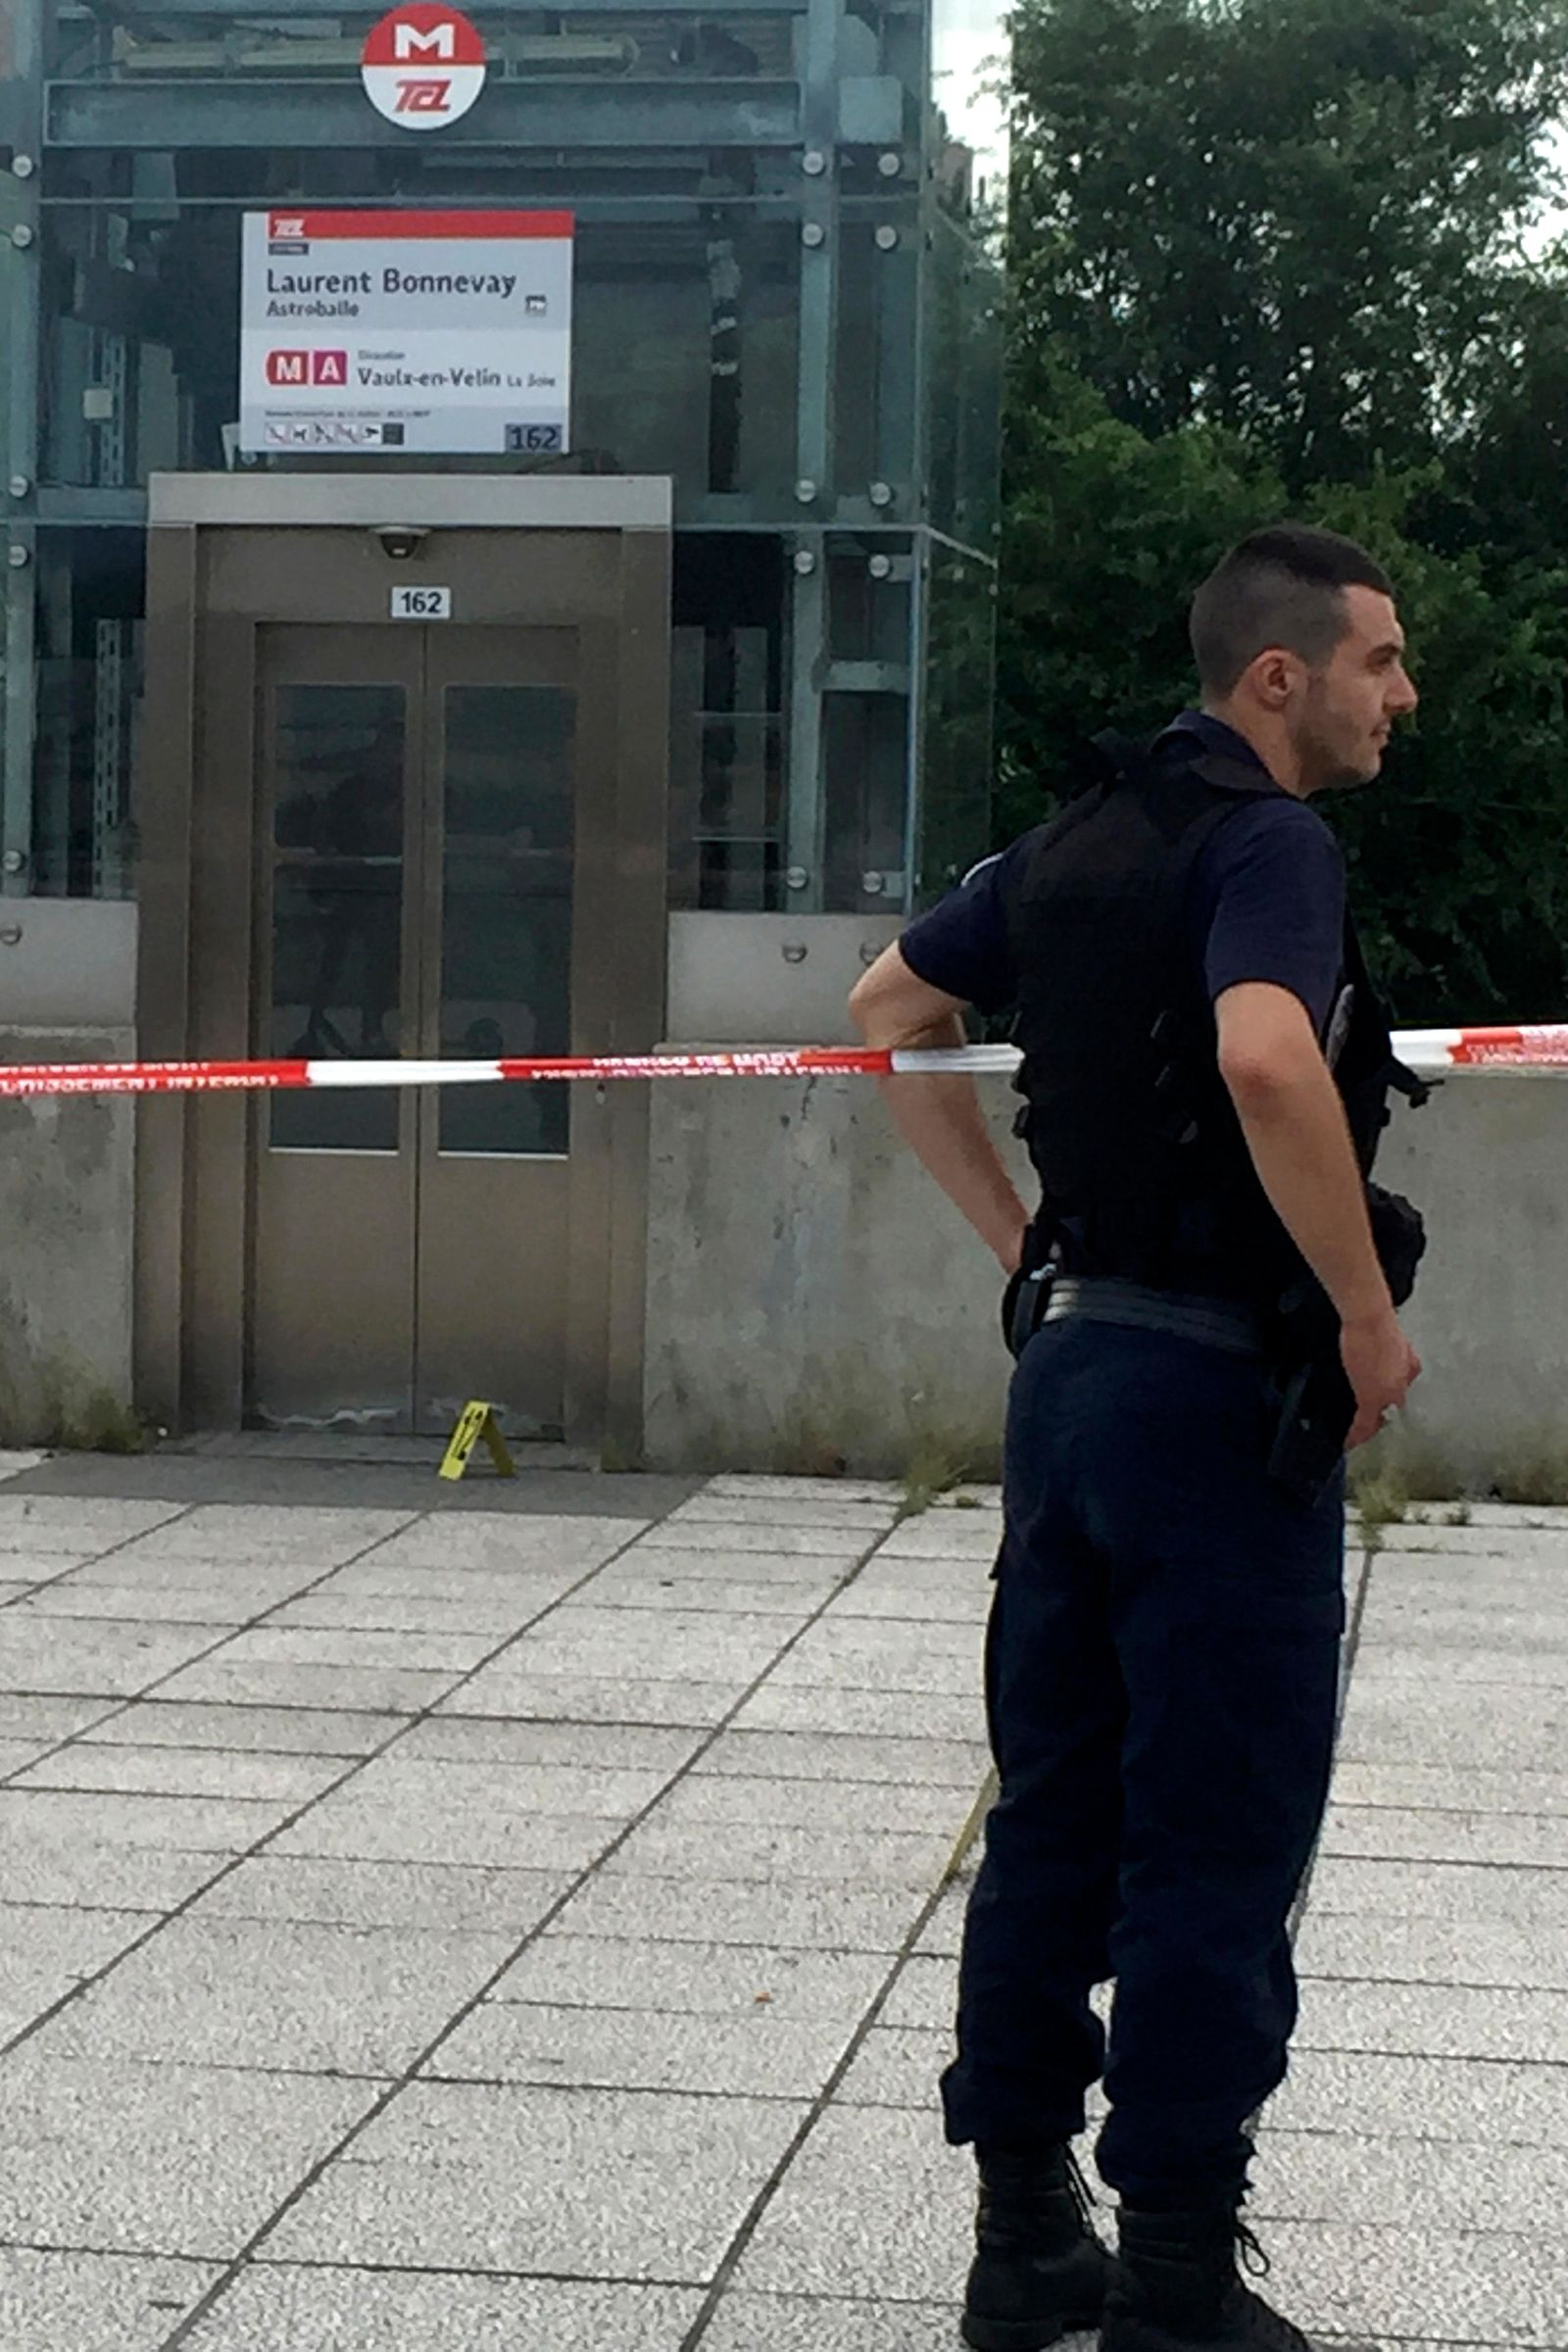 A police officer stands next to the place where an assailant who stabbed one person to death and injured nine others has been arrested, Saturday Aug.31, 2019 just outside a subway station in Villeurbanne, outside Lyon, central France. The reason for the attack is unclear. (AP Photo/Nicolas Vaux-Montagny)